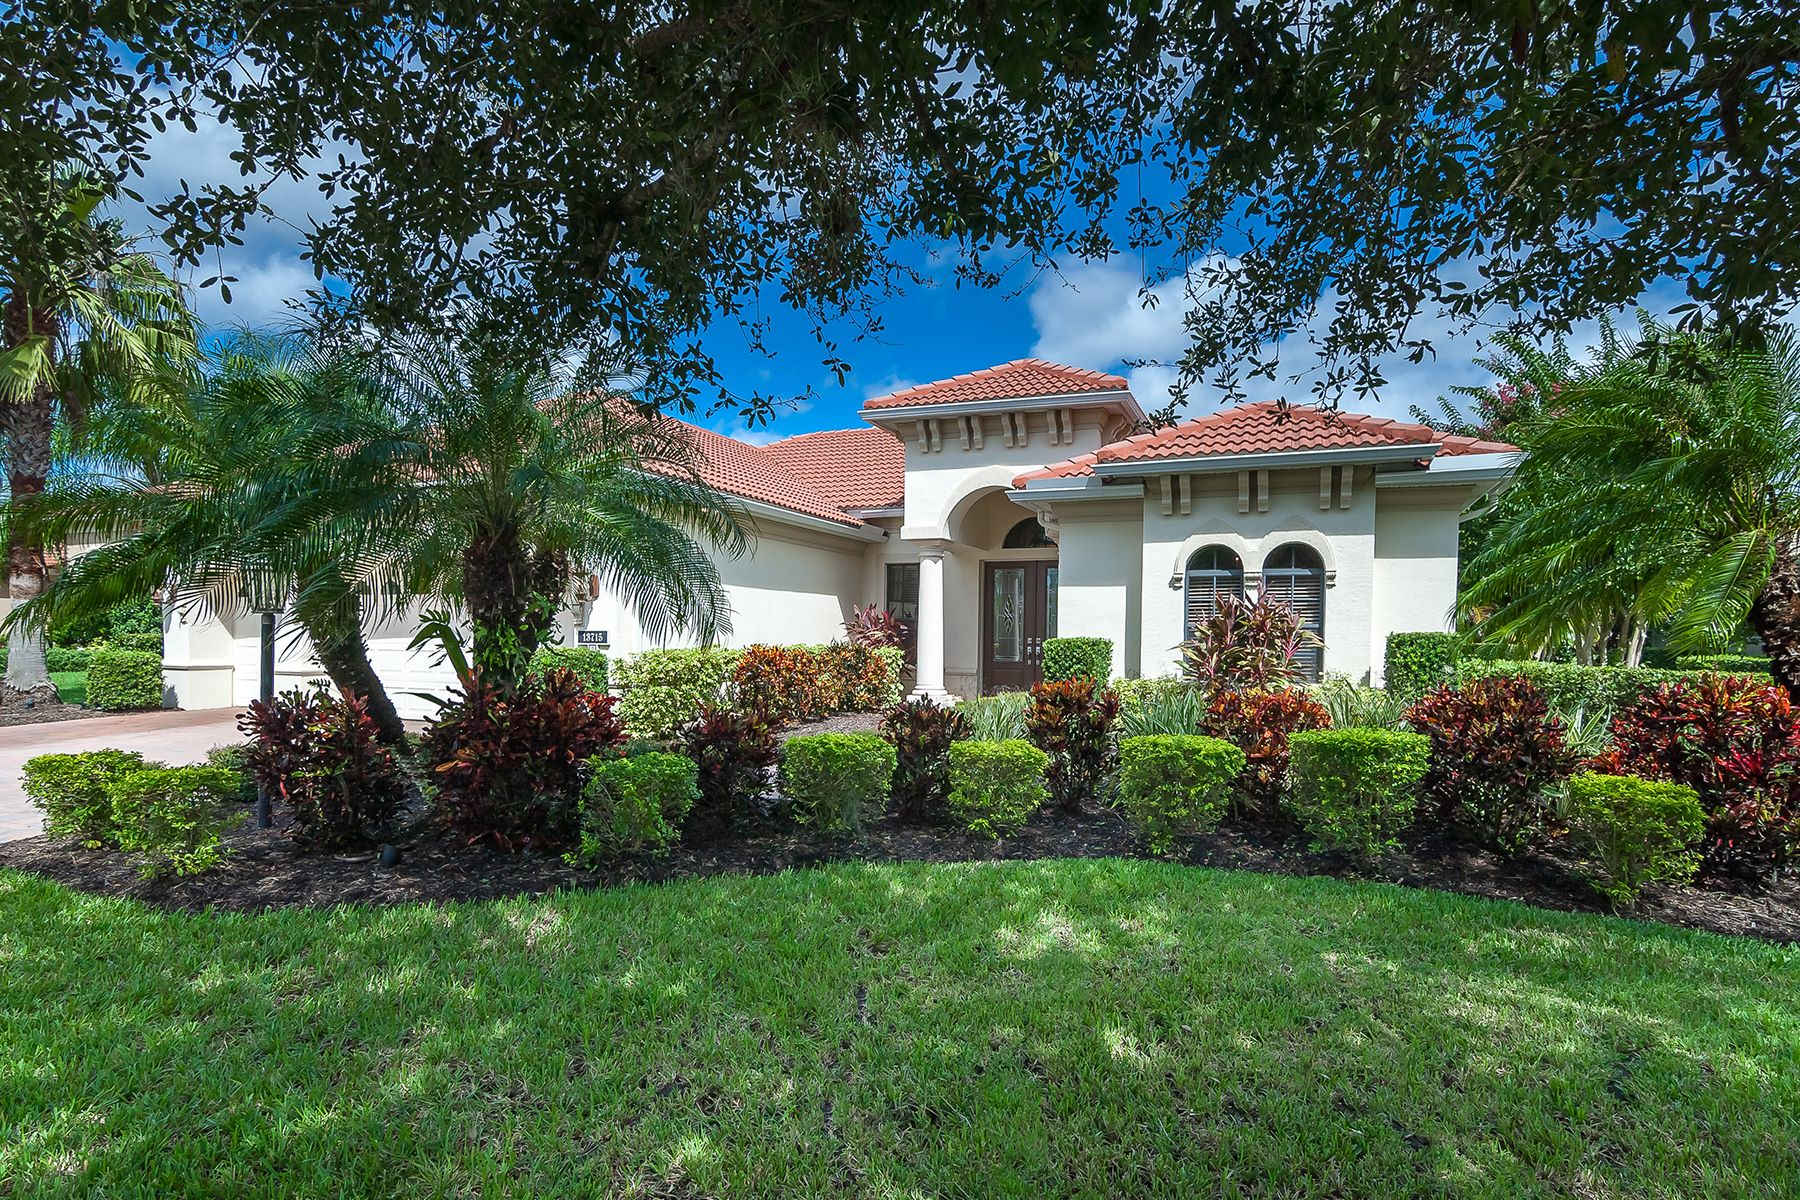 Single Family Home for Sale at LEGENDS WALK 13715 Oasis Terr Lakewood Ranch, Florida, 34202 United States